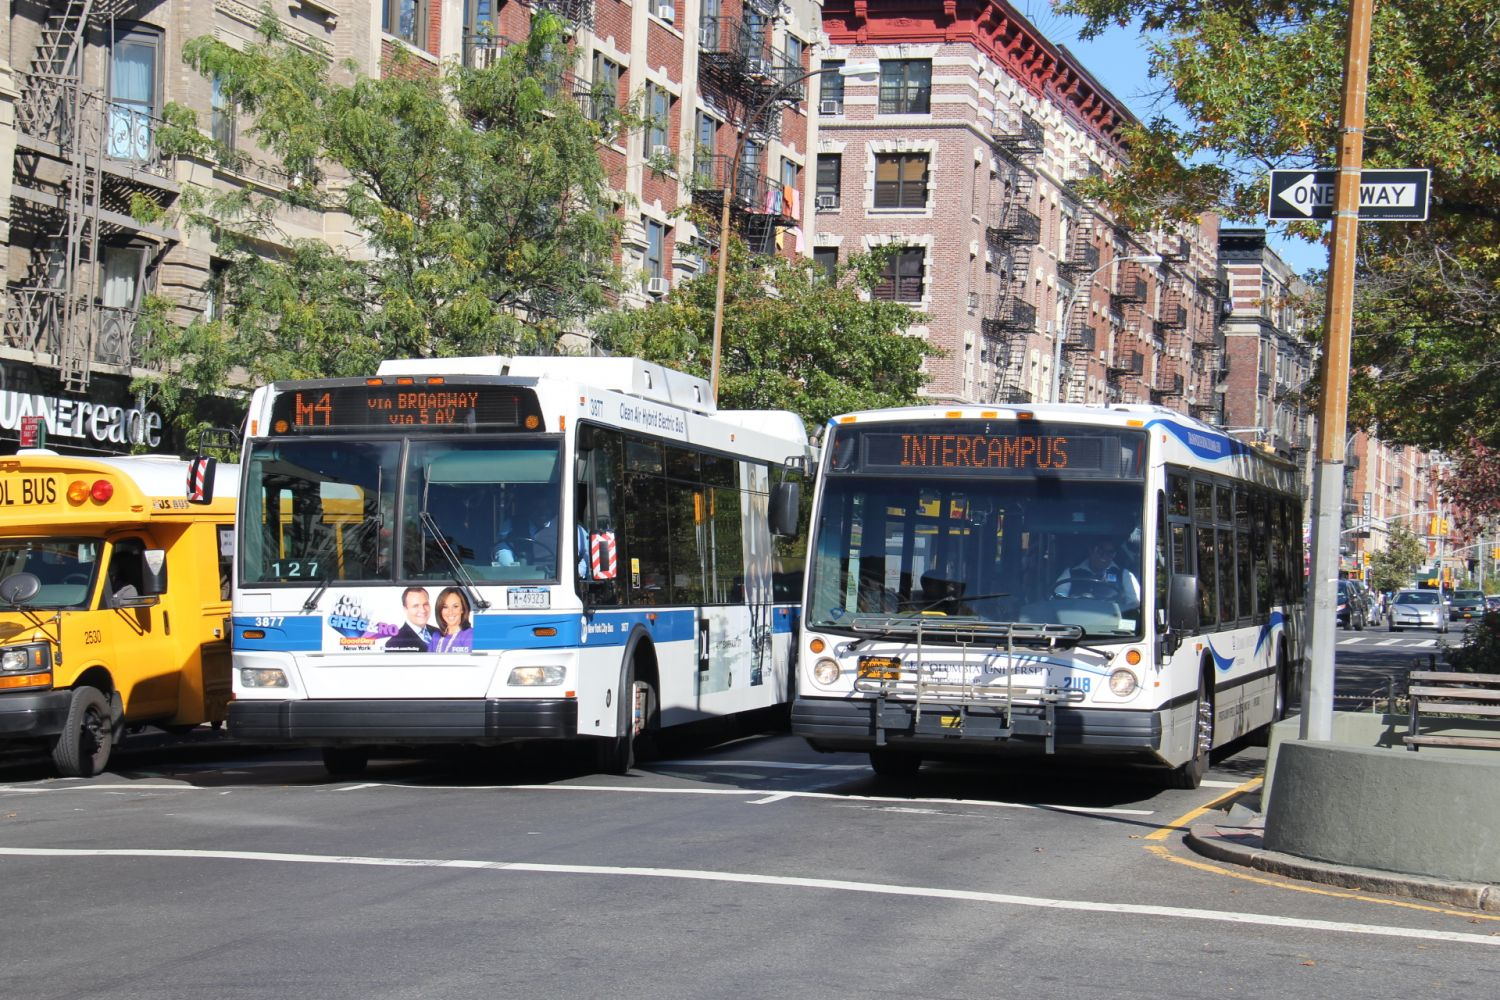 2008 Orion VII NG HLF #3877 M4 and 2007 LF40102 LFS #2118 Columbia University Green Line at Broadway and 137th Street